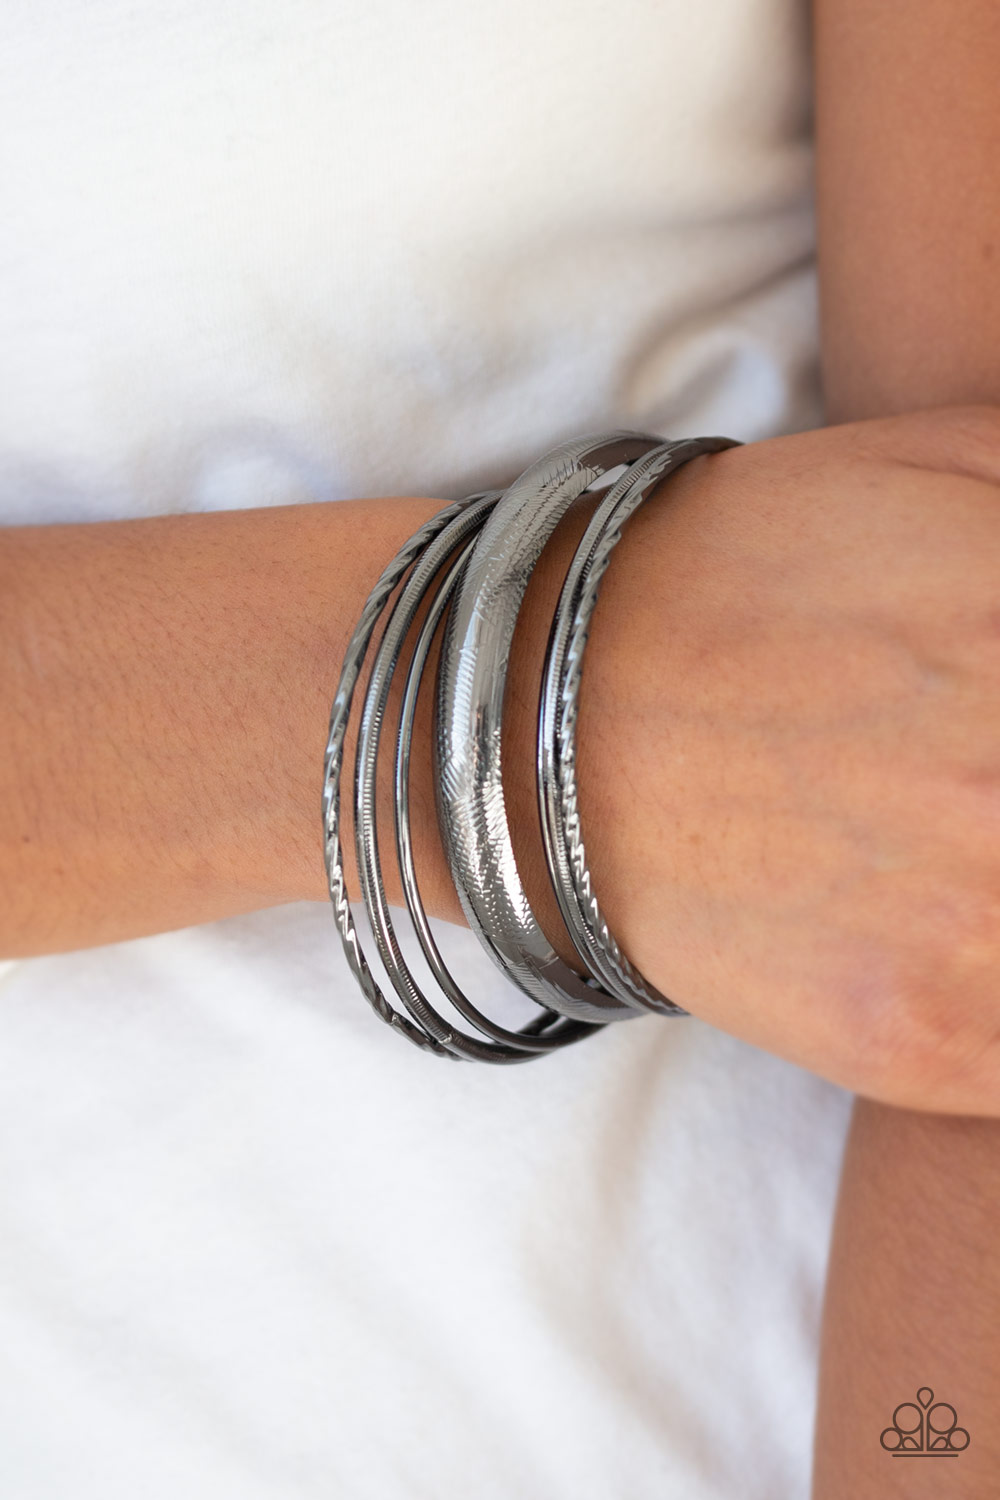 Black Gunmetal Bangle Set of 7 Bracelets $5 www.my-bling.com